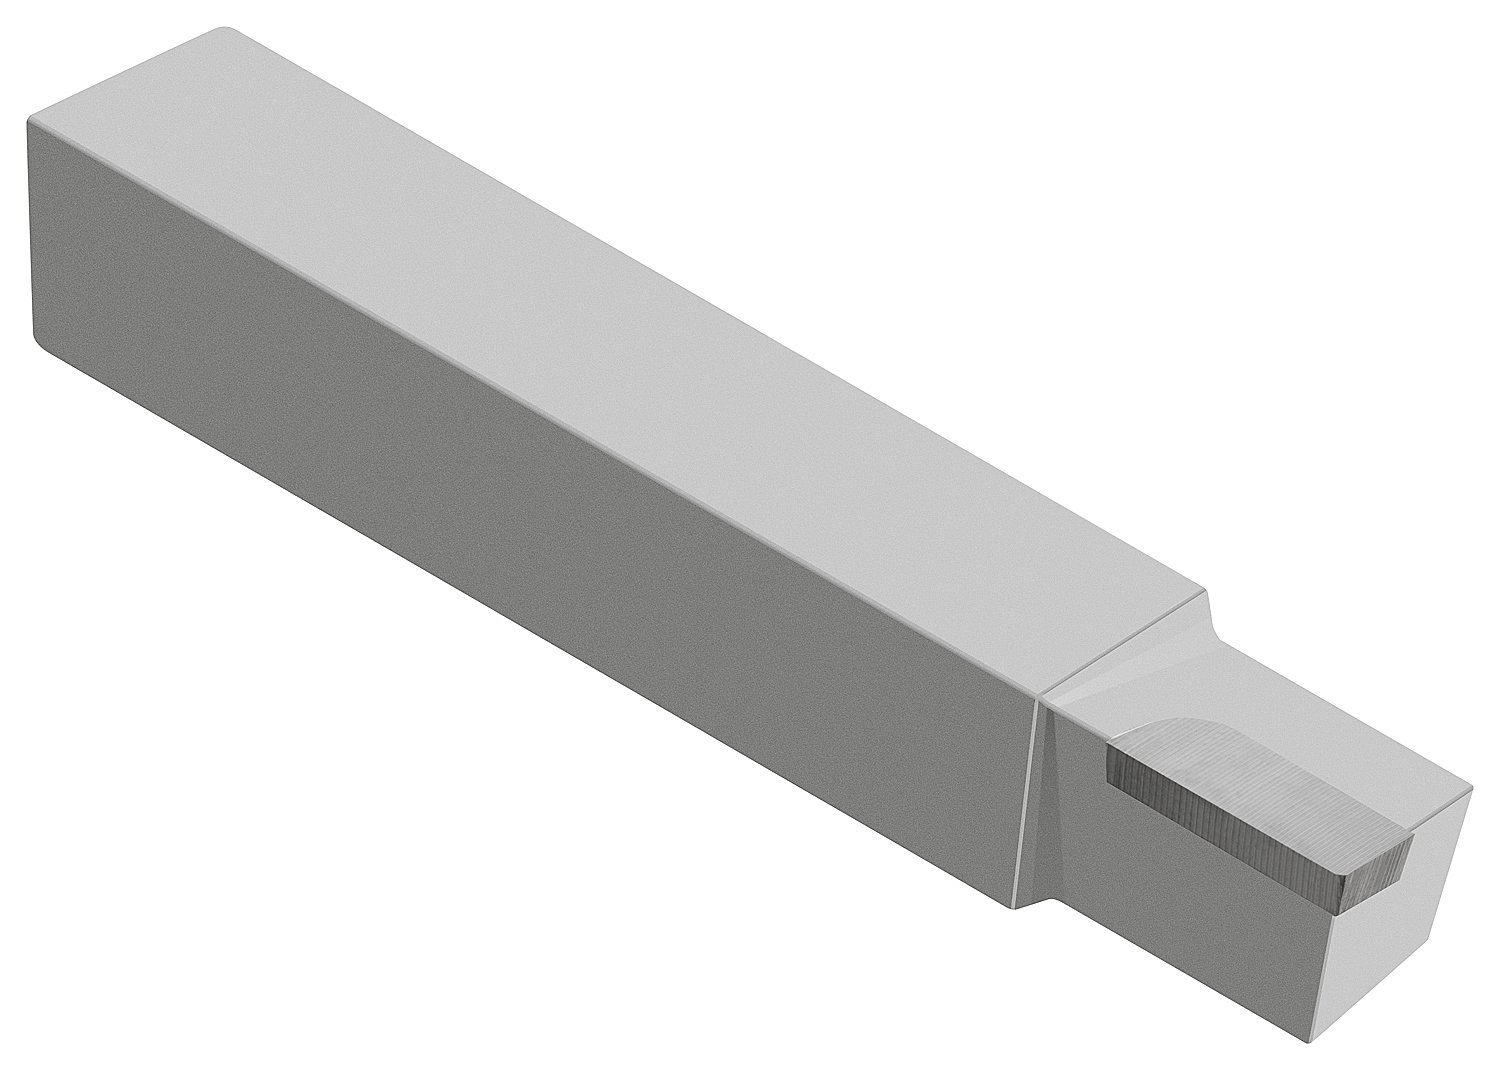 Micro 100 AL-6 Brazed Tool, Left Hand Square Shank Diameter''Style A'', 2.500'' Length, 3/8'' Width, 3/8'' Height, Tip Dimension of 1/8'' Thick, 1/4'' Width, 3/8'' Length, 1/64'' Radius